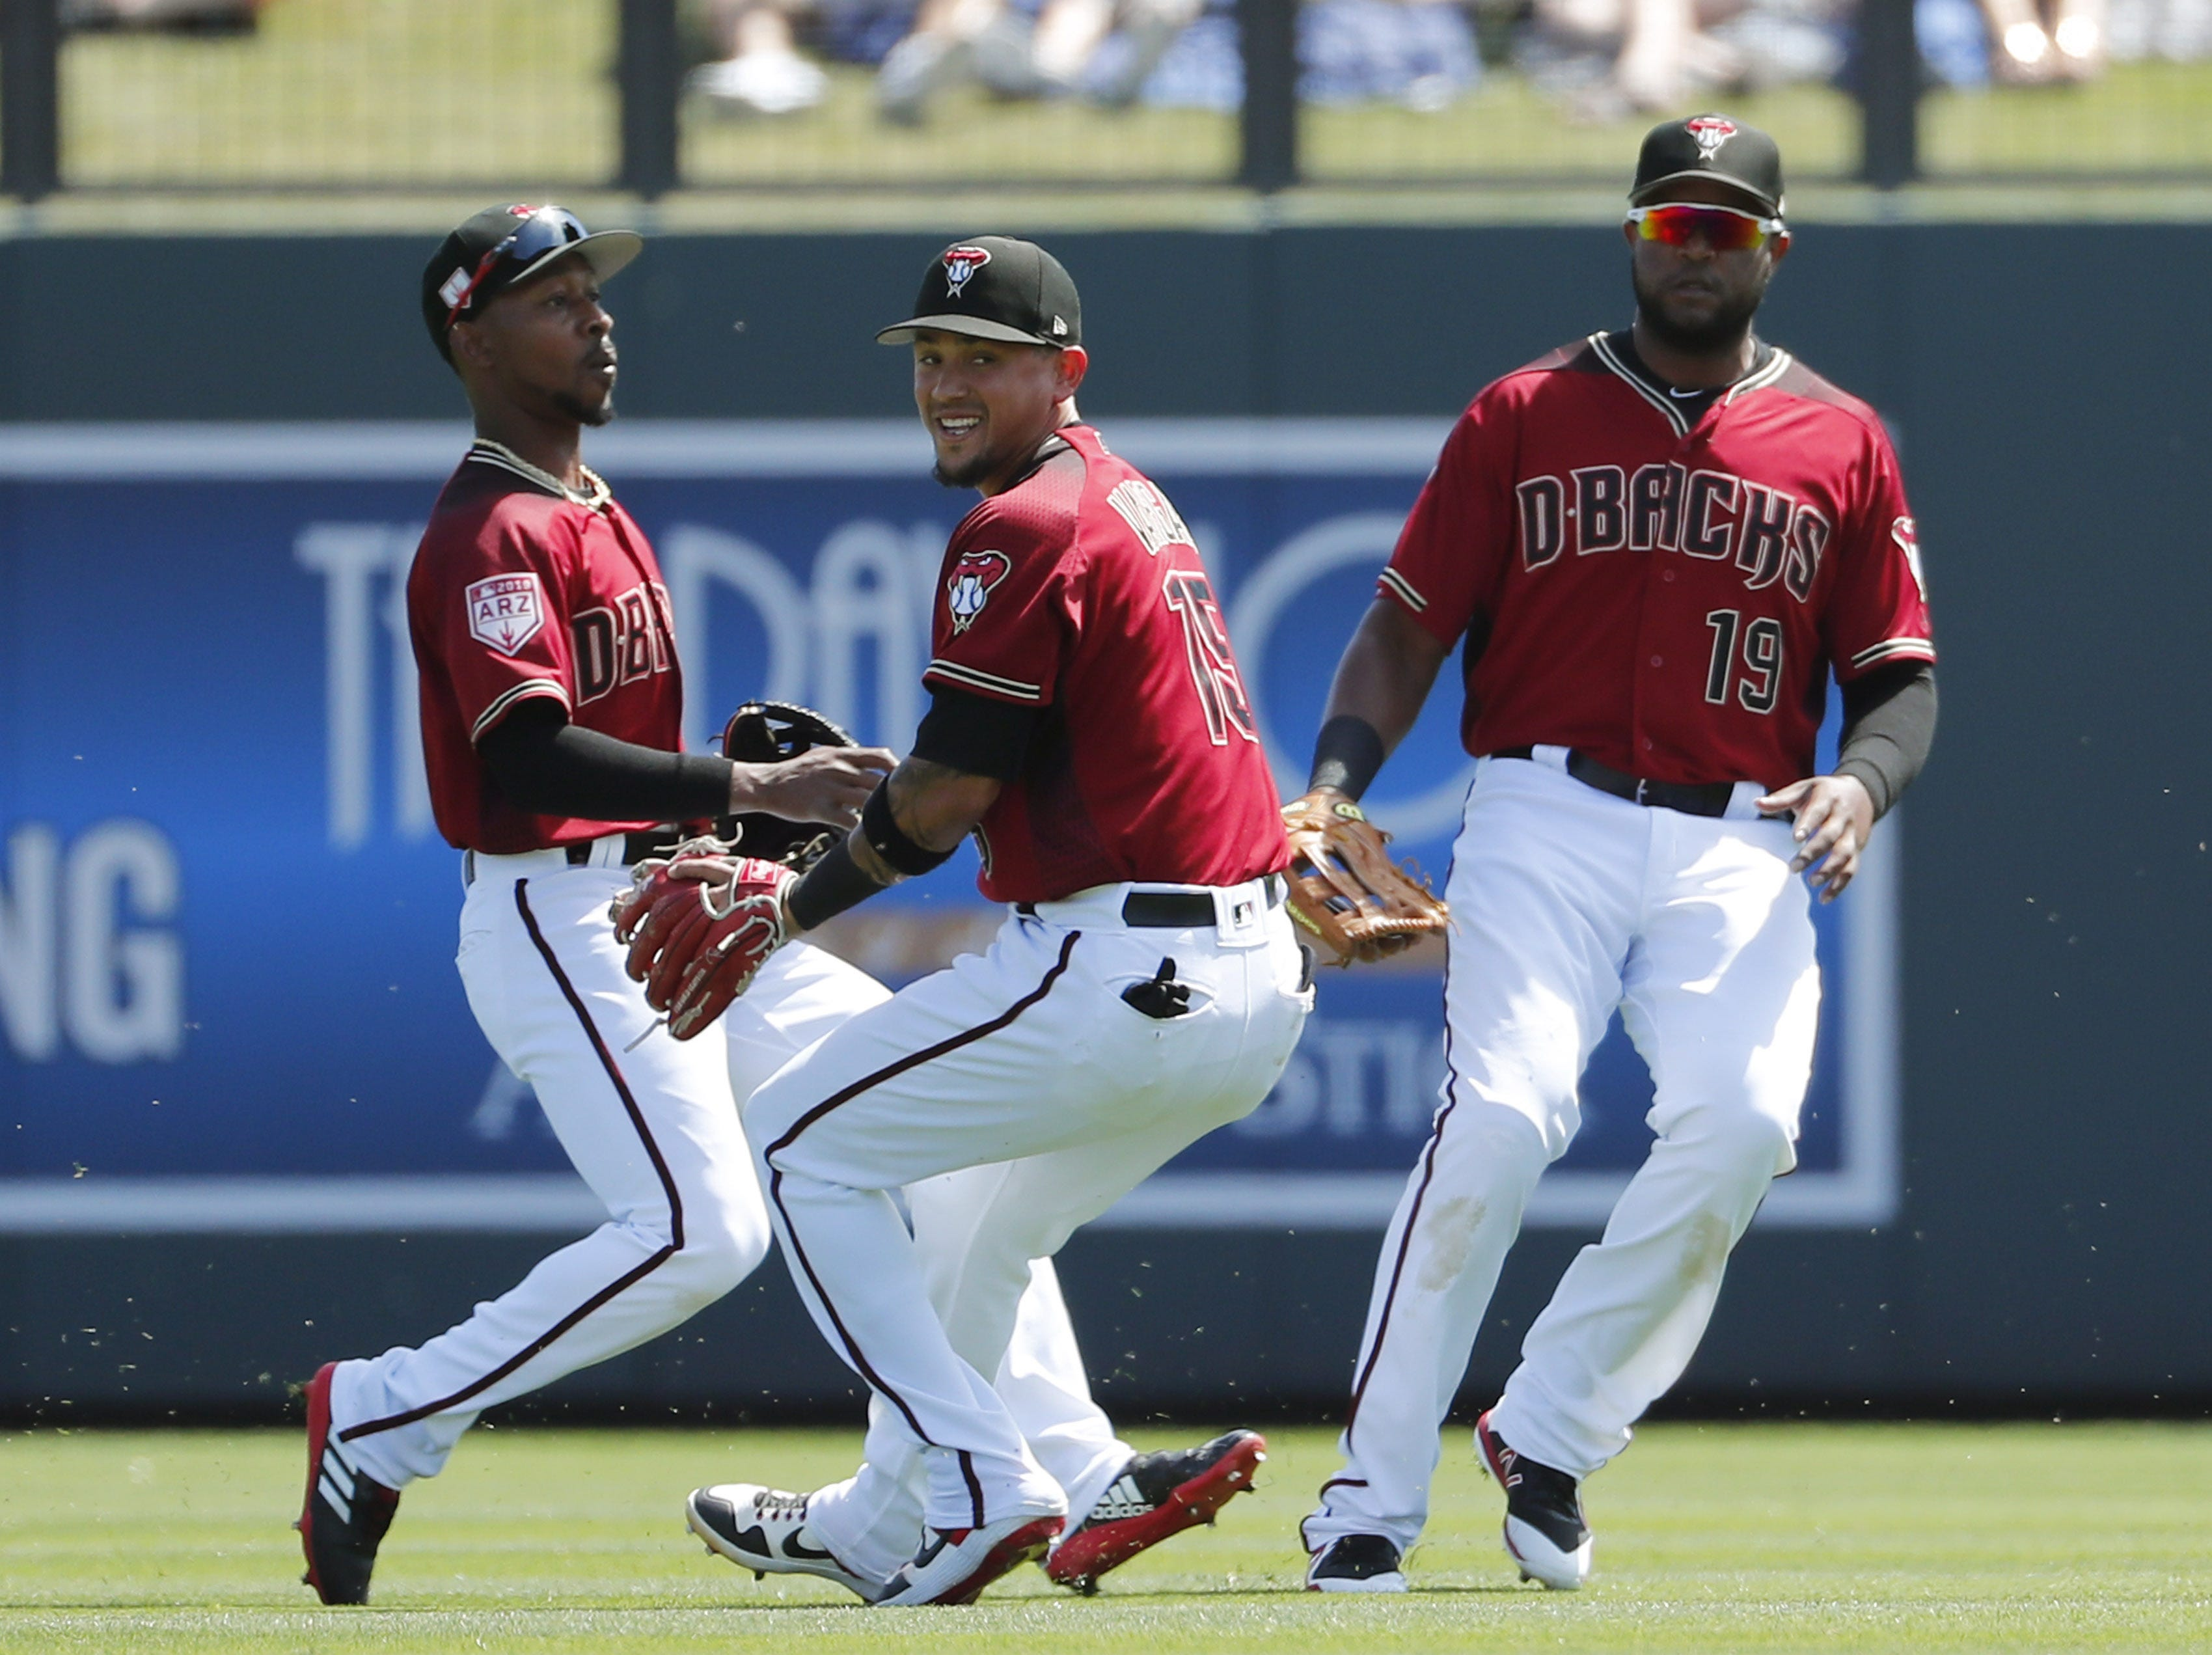 Arizona Diamondbacks second baseman Ildemaro Vargas (15) fields a ball between outfielders Jarrod Dyson (left) and Socrates Brito during spring training action against the Milwaukee Brewers at Salt River Fields at Talking Stick March 24, 2019.